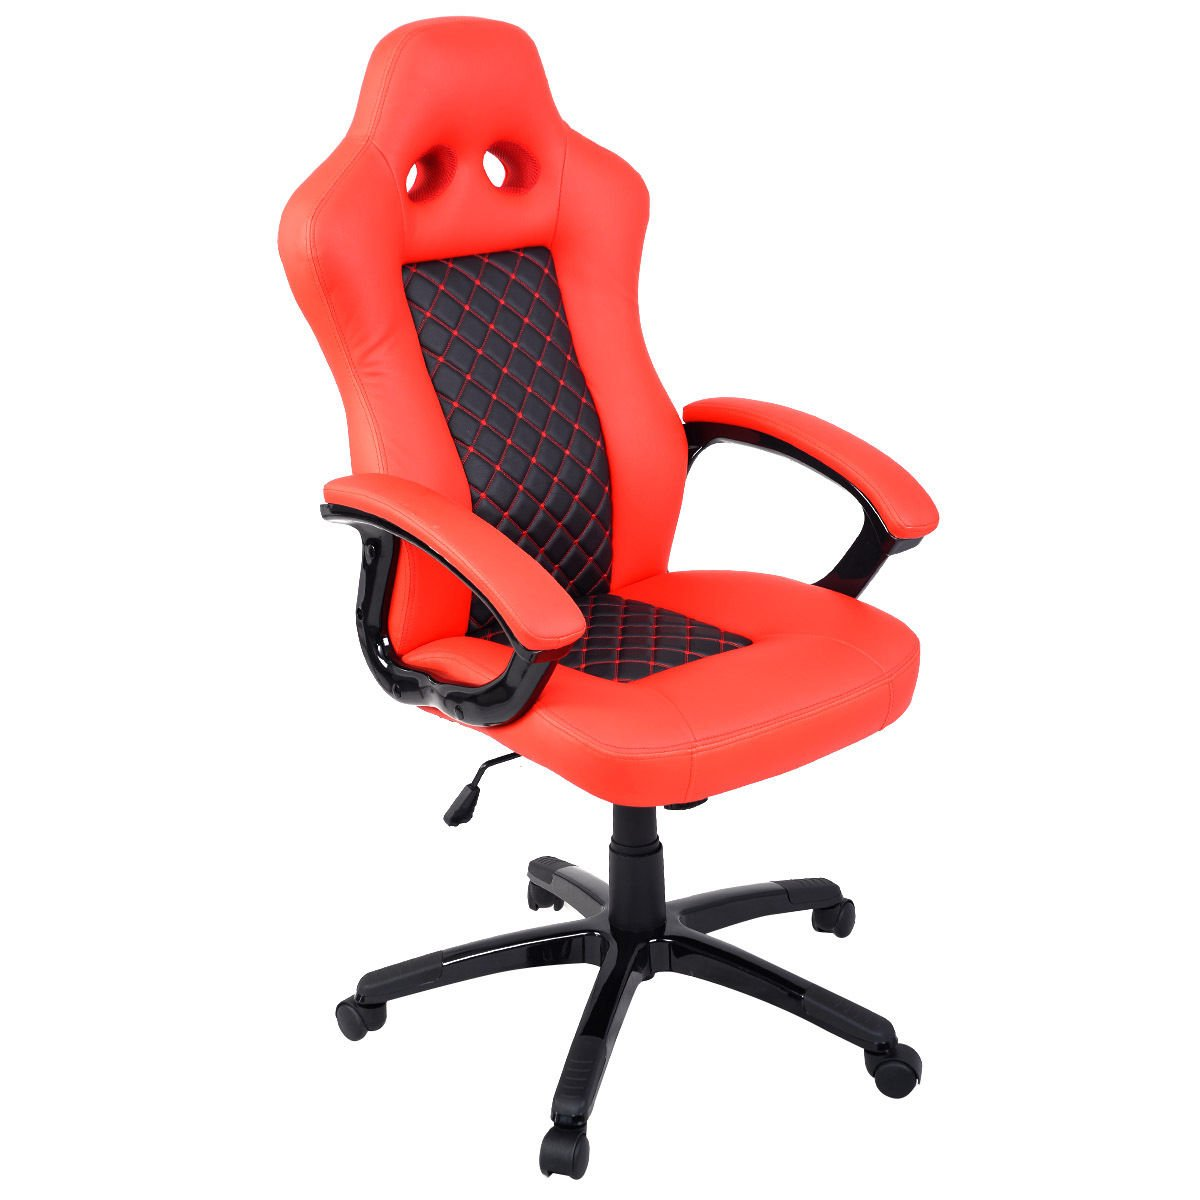 Giantex Racing Gaming Office Chair High Back Style Bucket Seat Office Desk Chair Gaming Chair